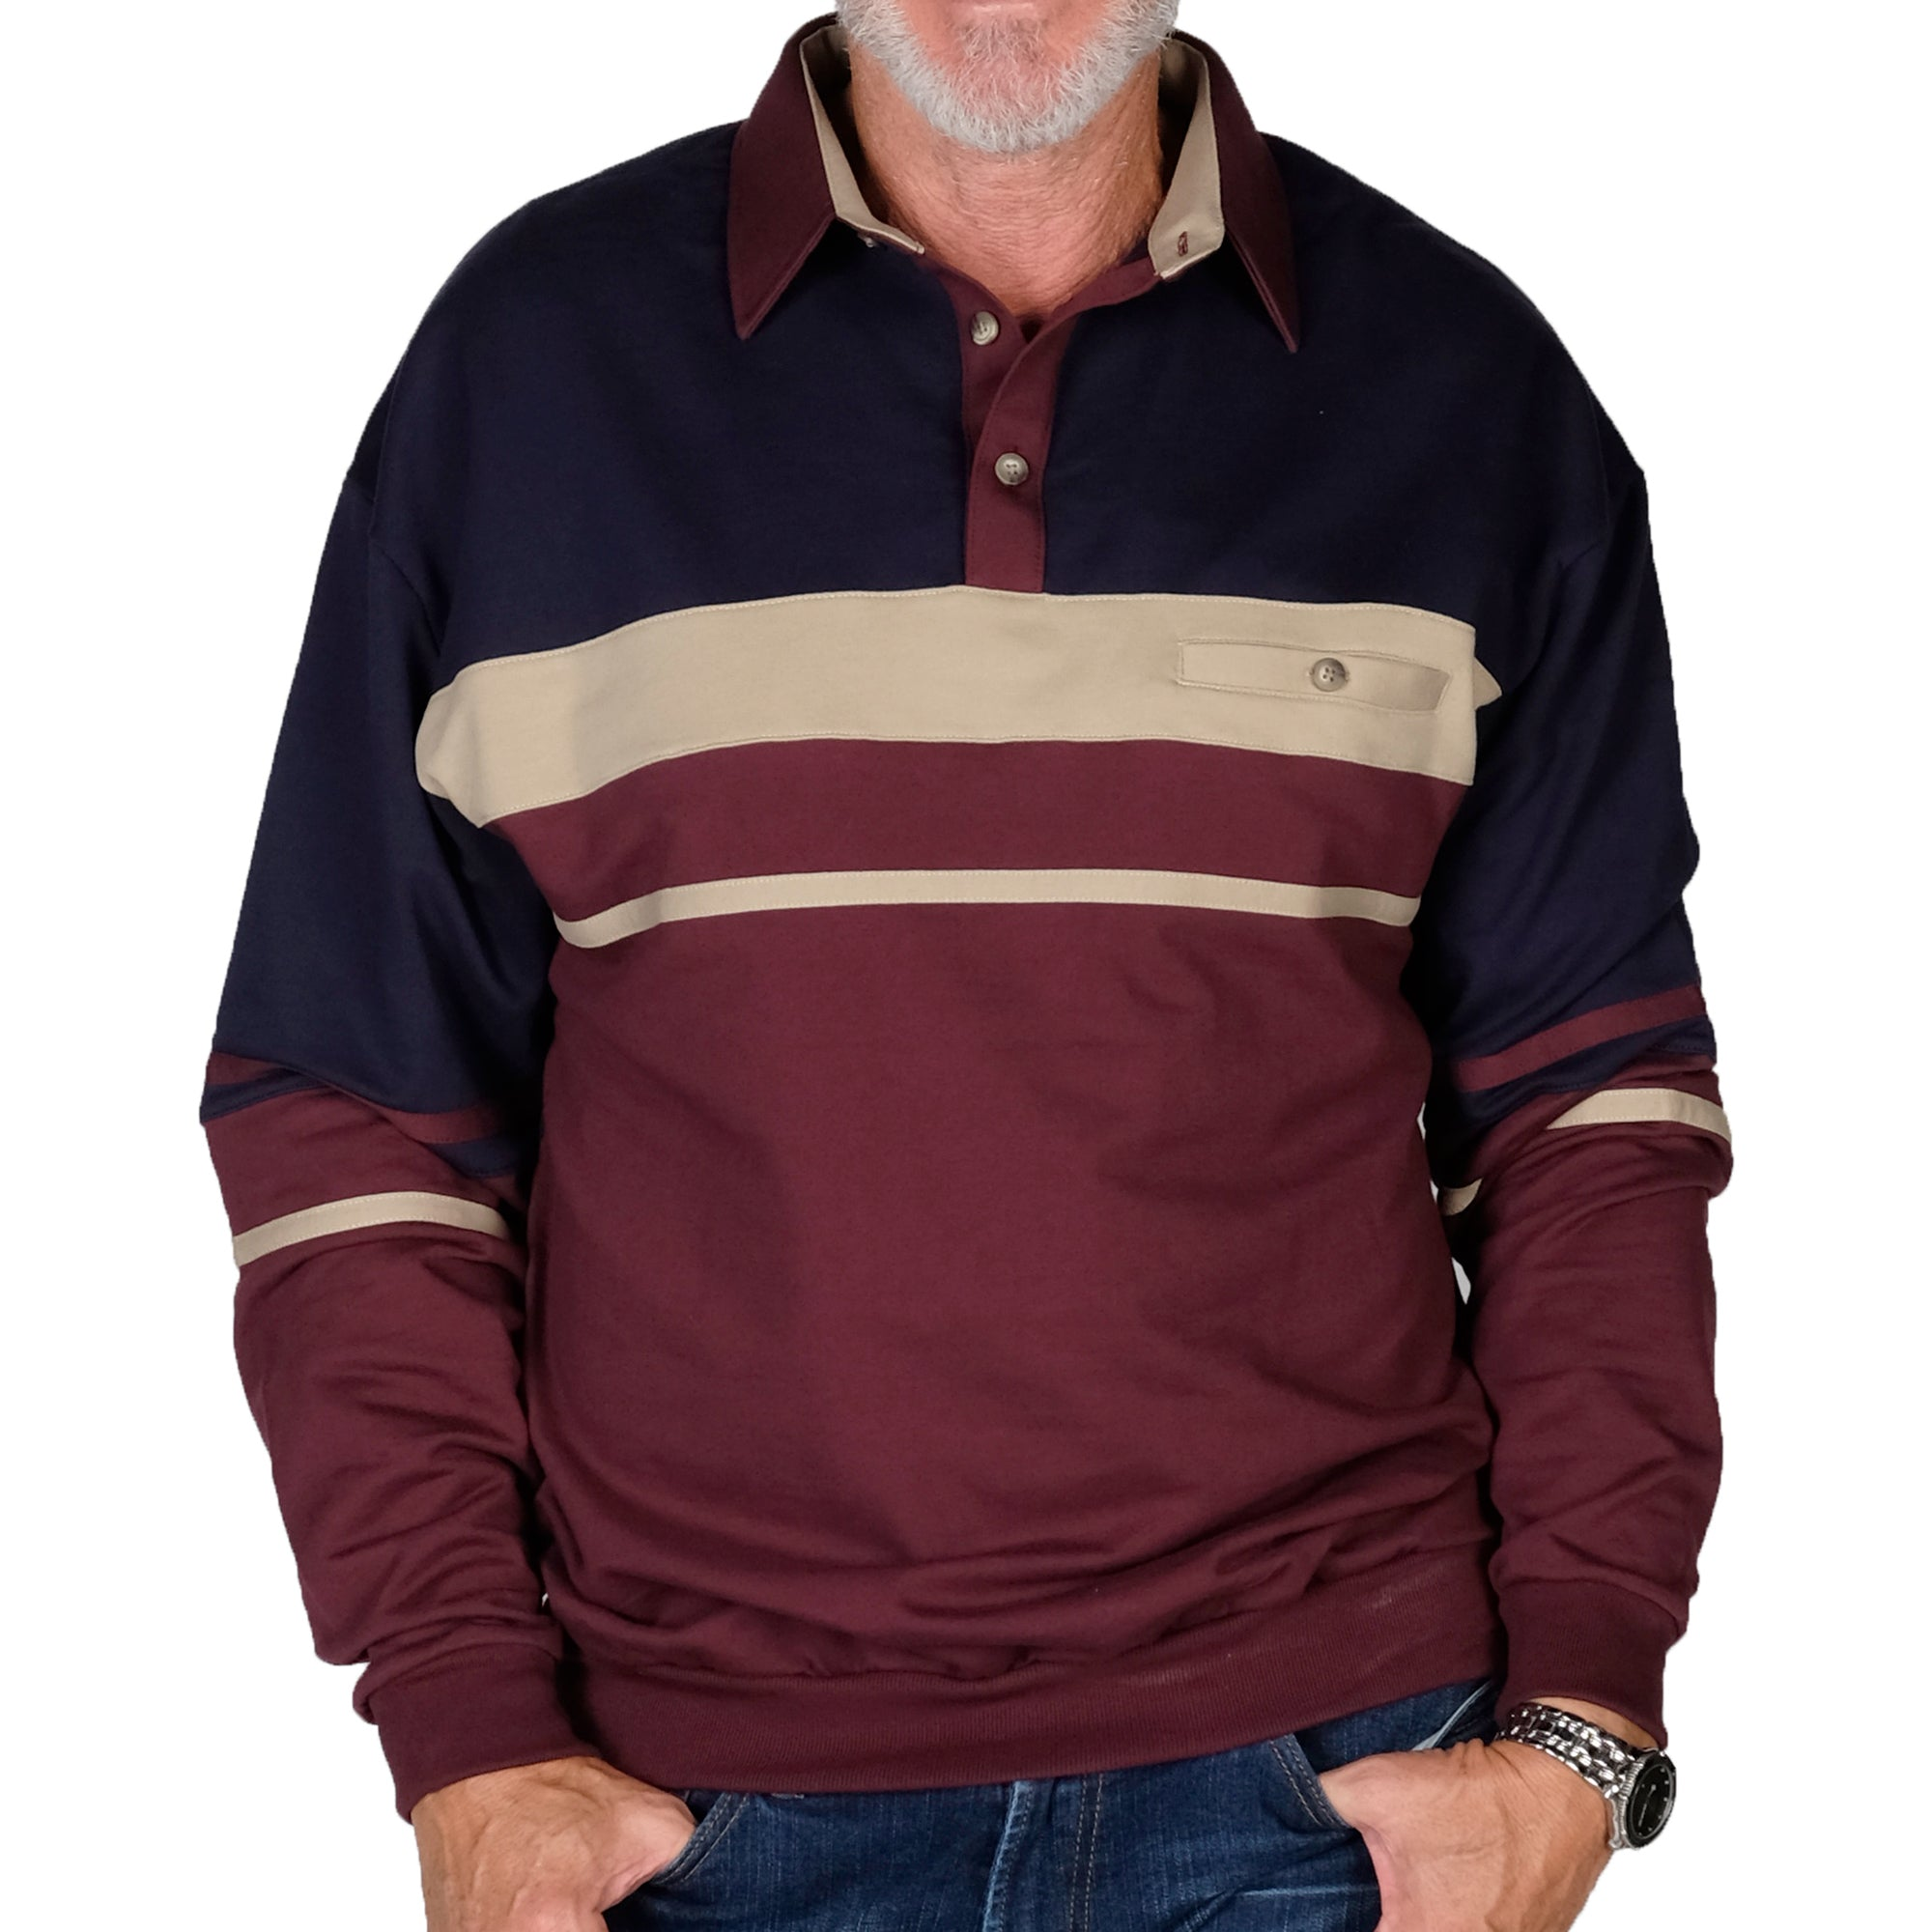 Classics By Palmland Horizontal Stripes Banded Bottom Shirt 6094-739 Burgundy - Big and Tall - theflagshirt